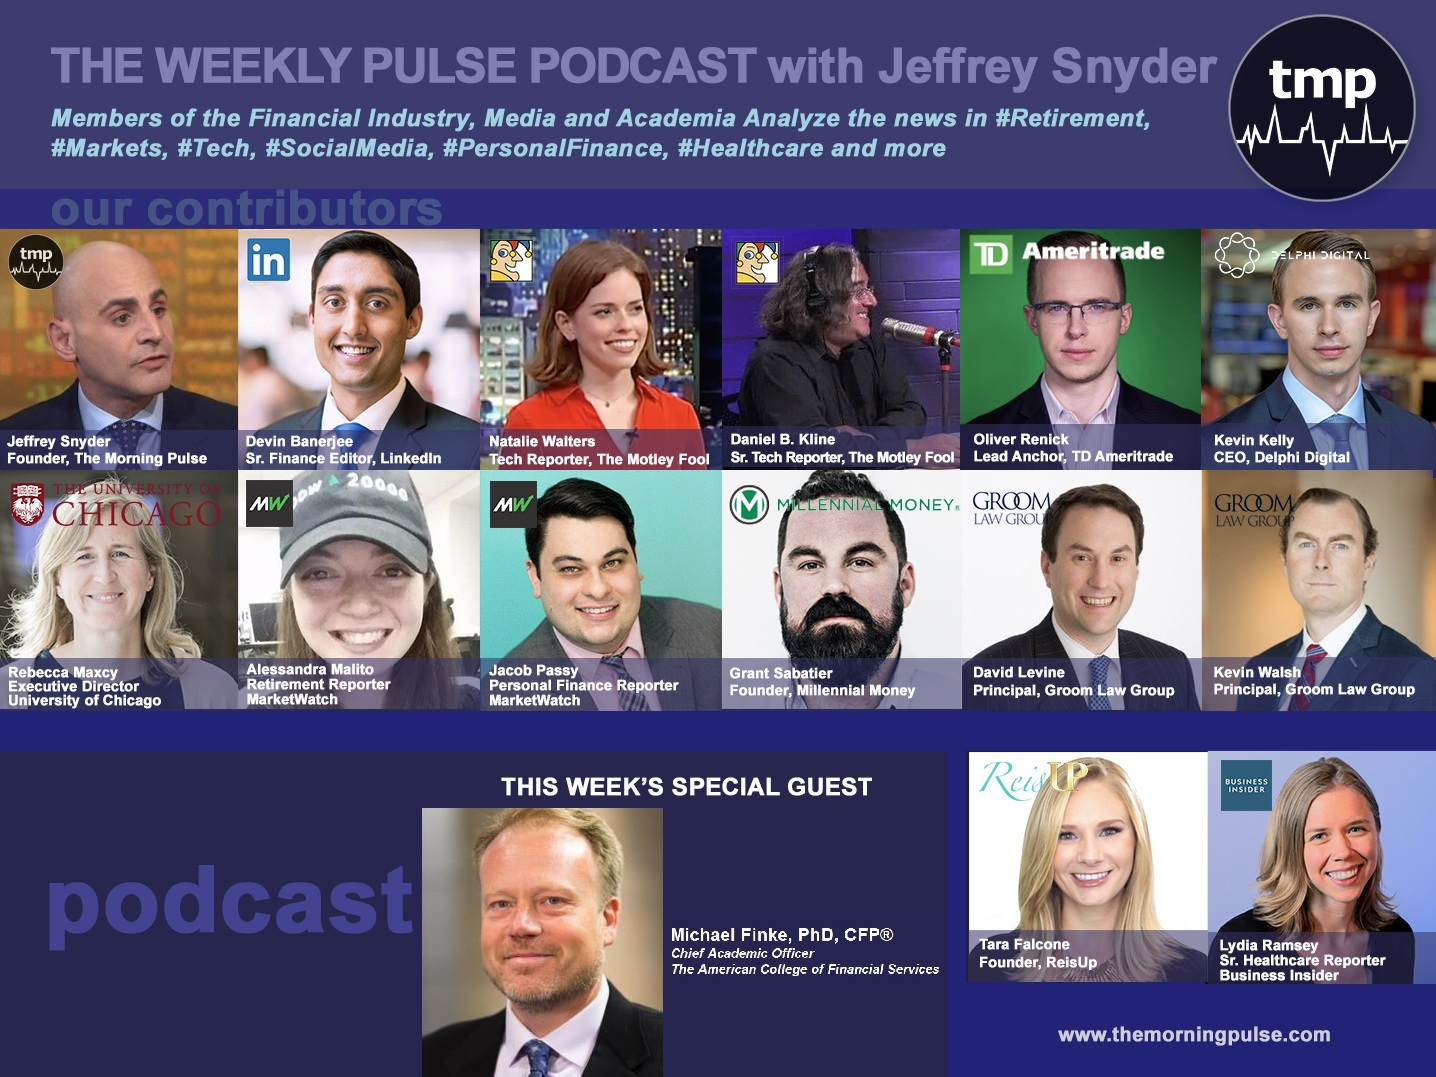 The Weekly Pulse Podcast for Sunday, April 21, 2019